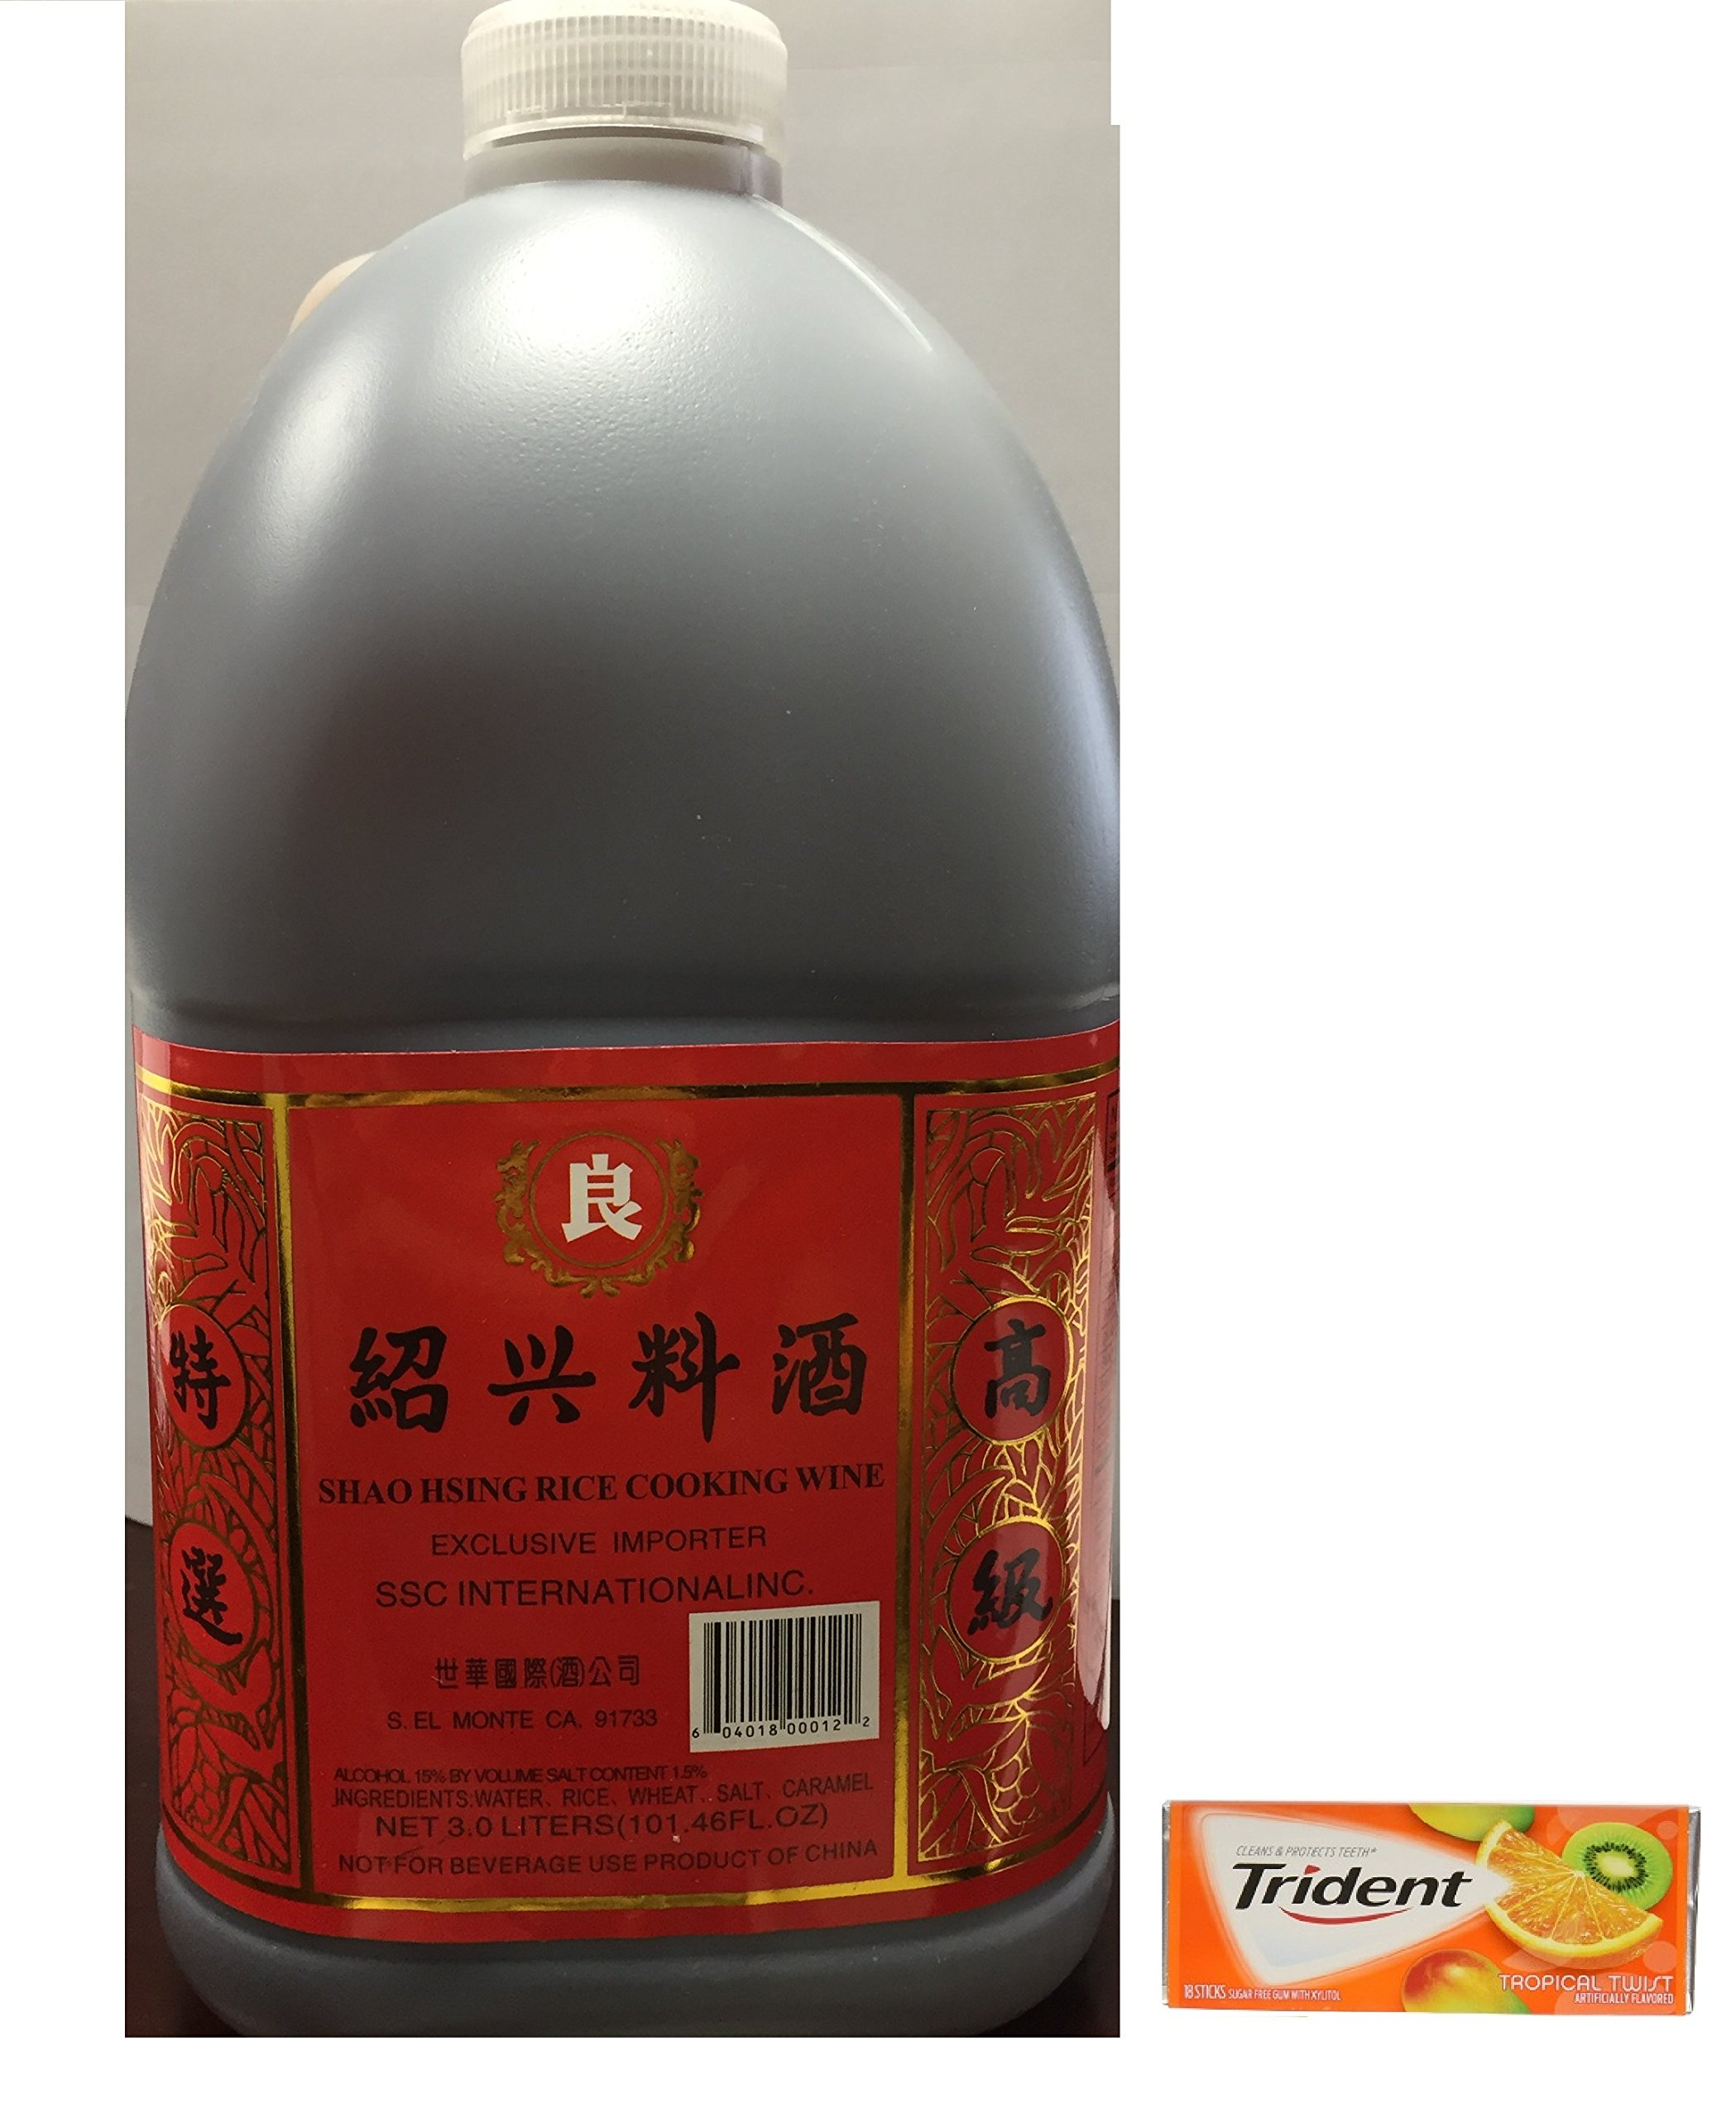 SHAOHSING RICE COOKING WINE 3.0 LITERS(101.46FL OZ) plus a Free Gift Trident Gum, Tropical Twist Flavor